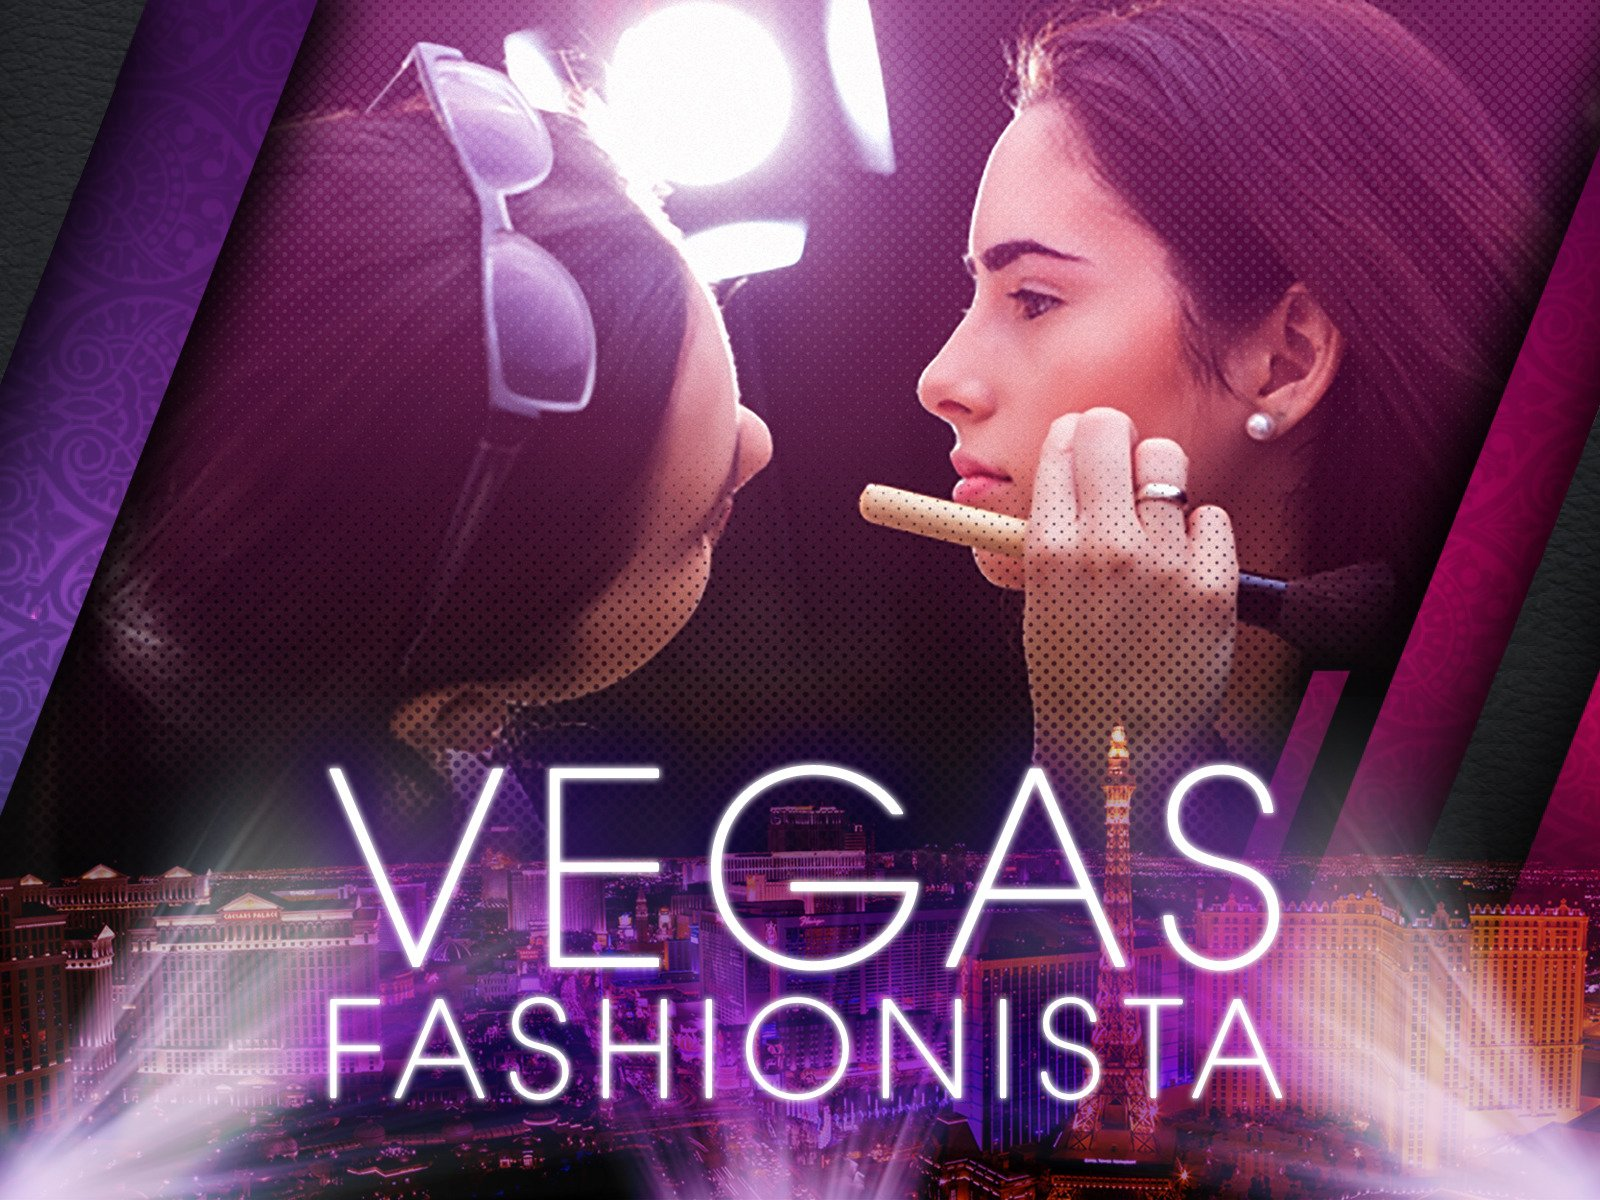 Vegas Fashionista - Season 1